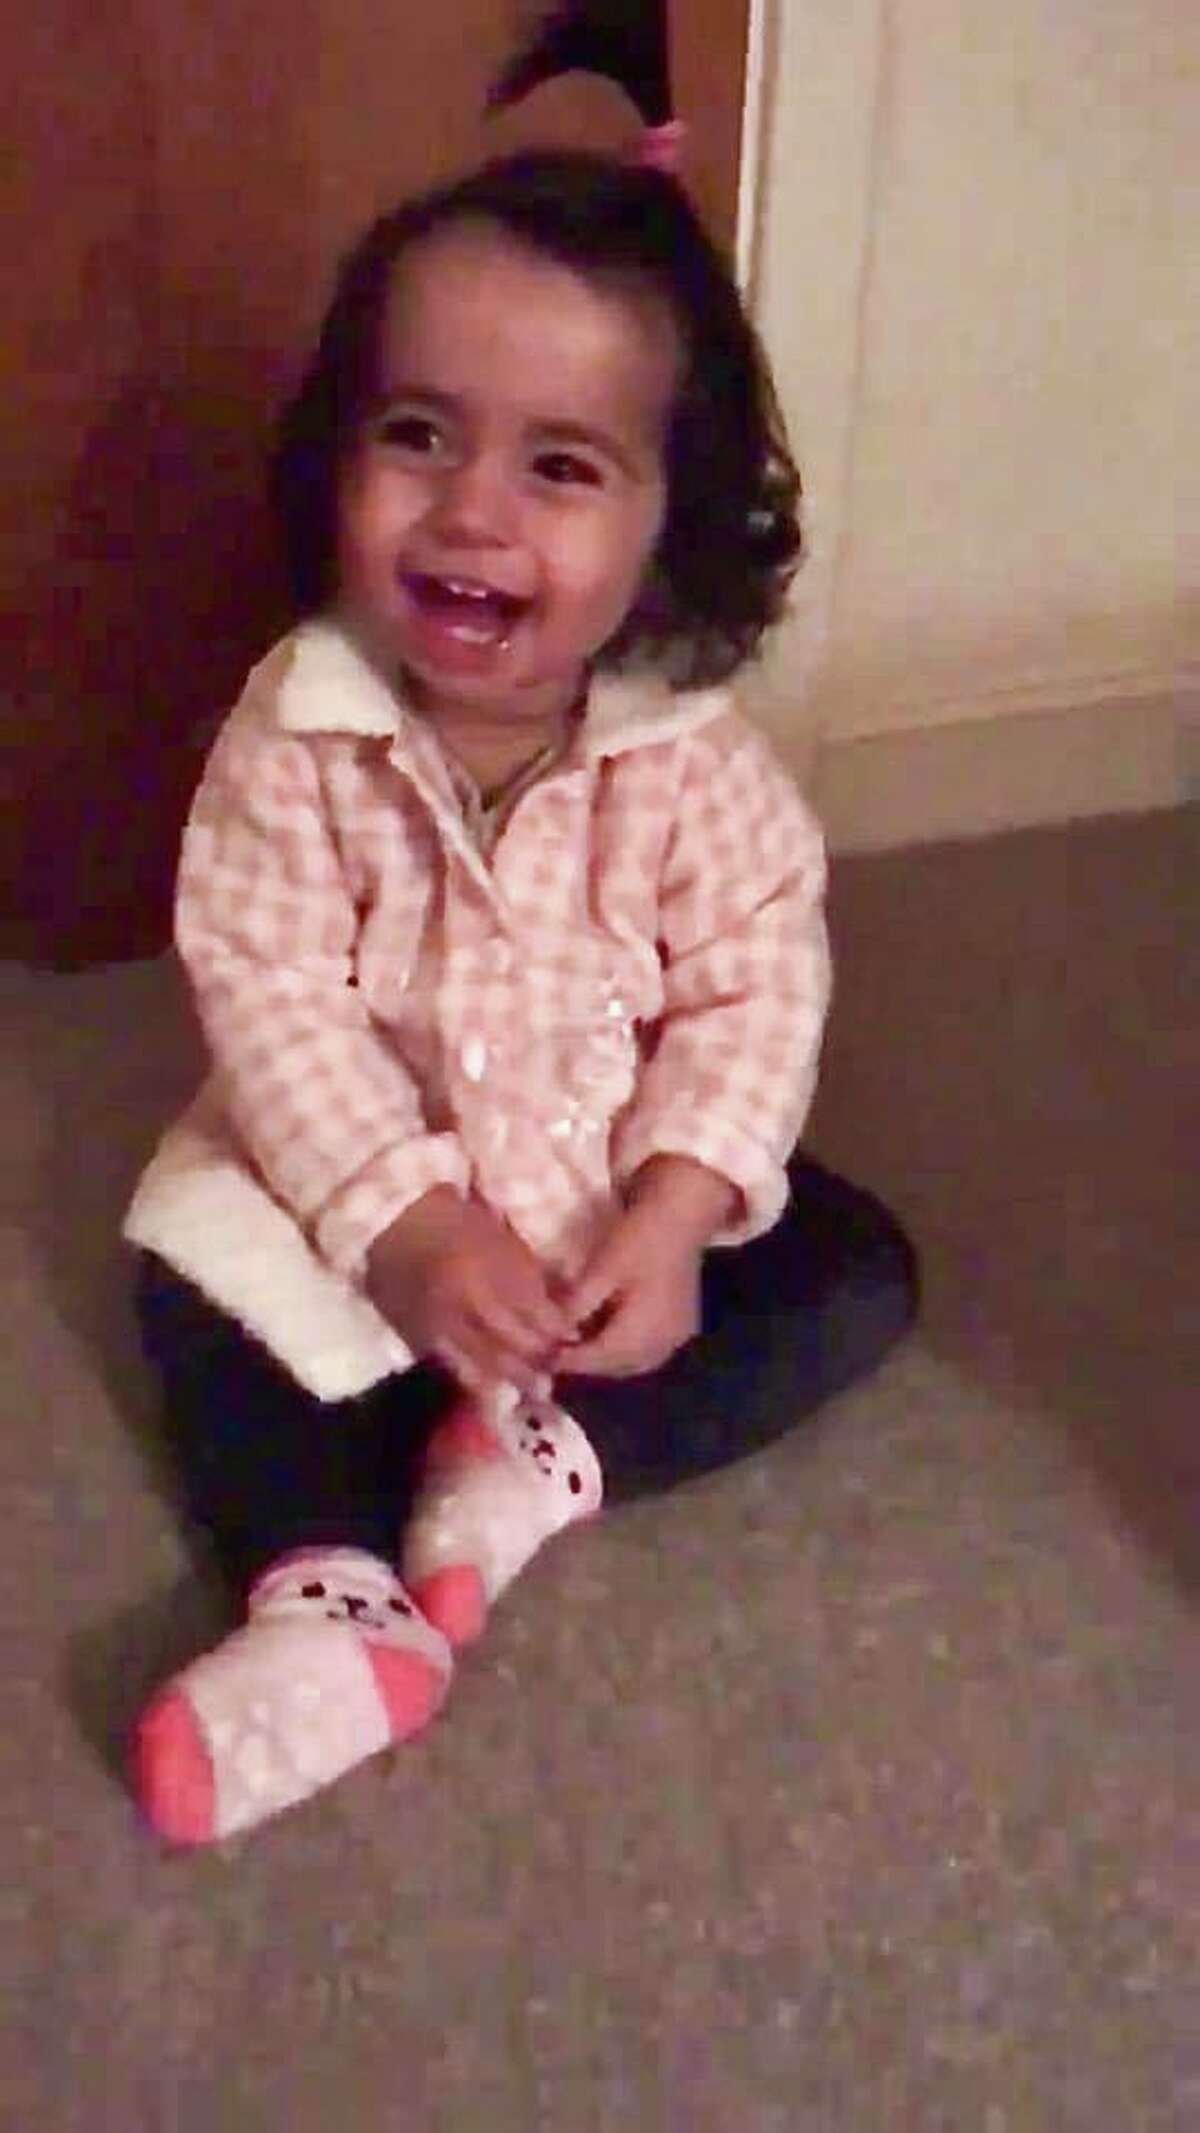 Vanessa Morales, an Ansonia toddler, was last seen on Dec. 2, 2019. A $10,000 reward has been offered for information leading to her whereabouts. Anyone who has seen her or knows where she is should contact the Ansonia PD at 203-735-1885 or the FBI at 1-800-225-5324.